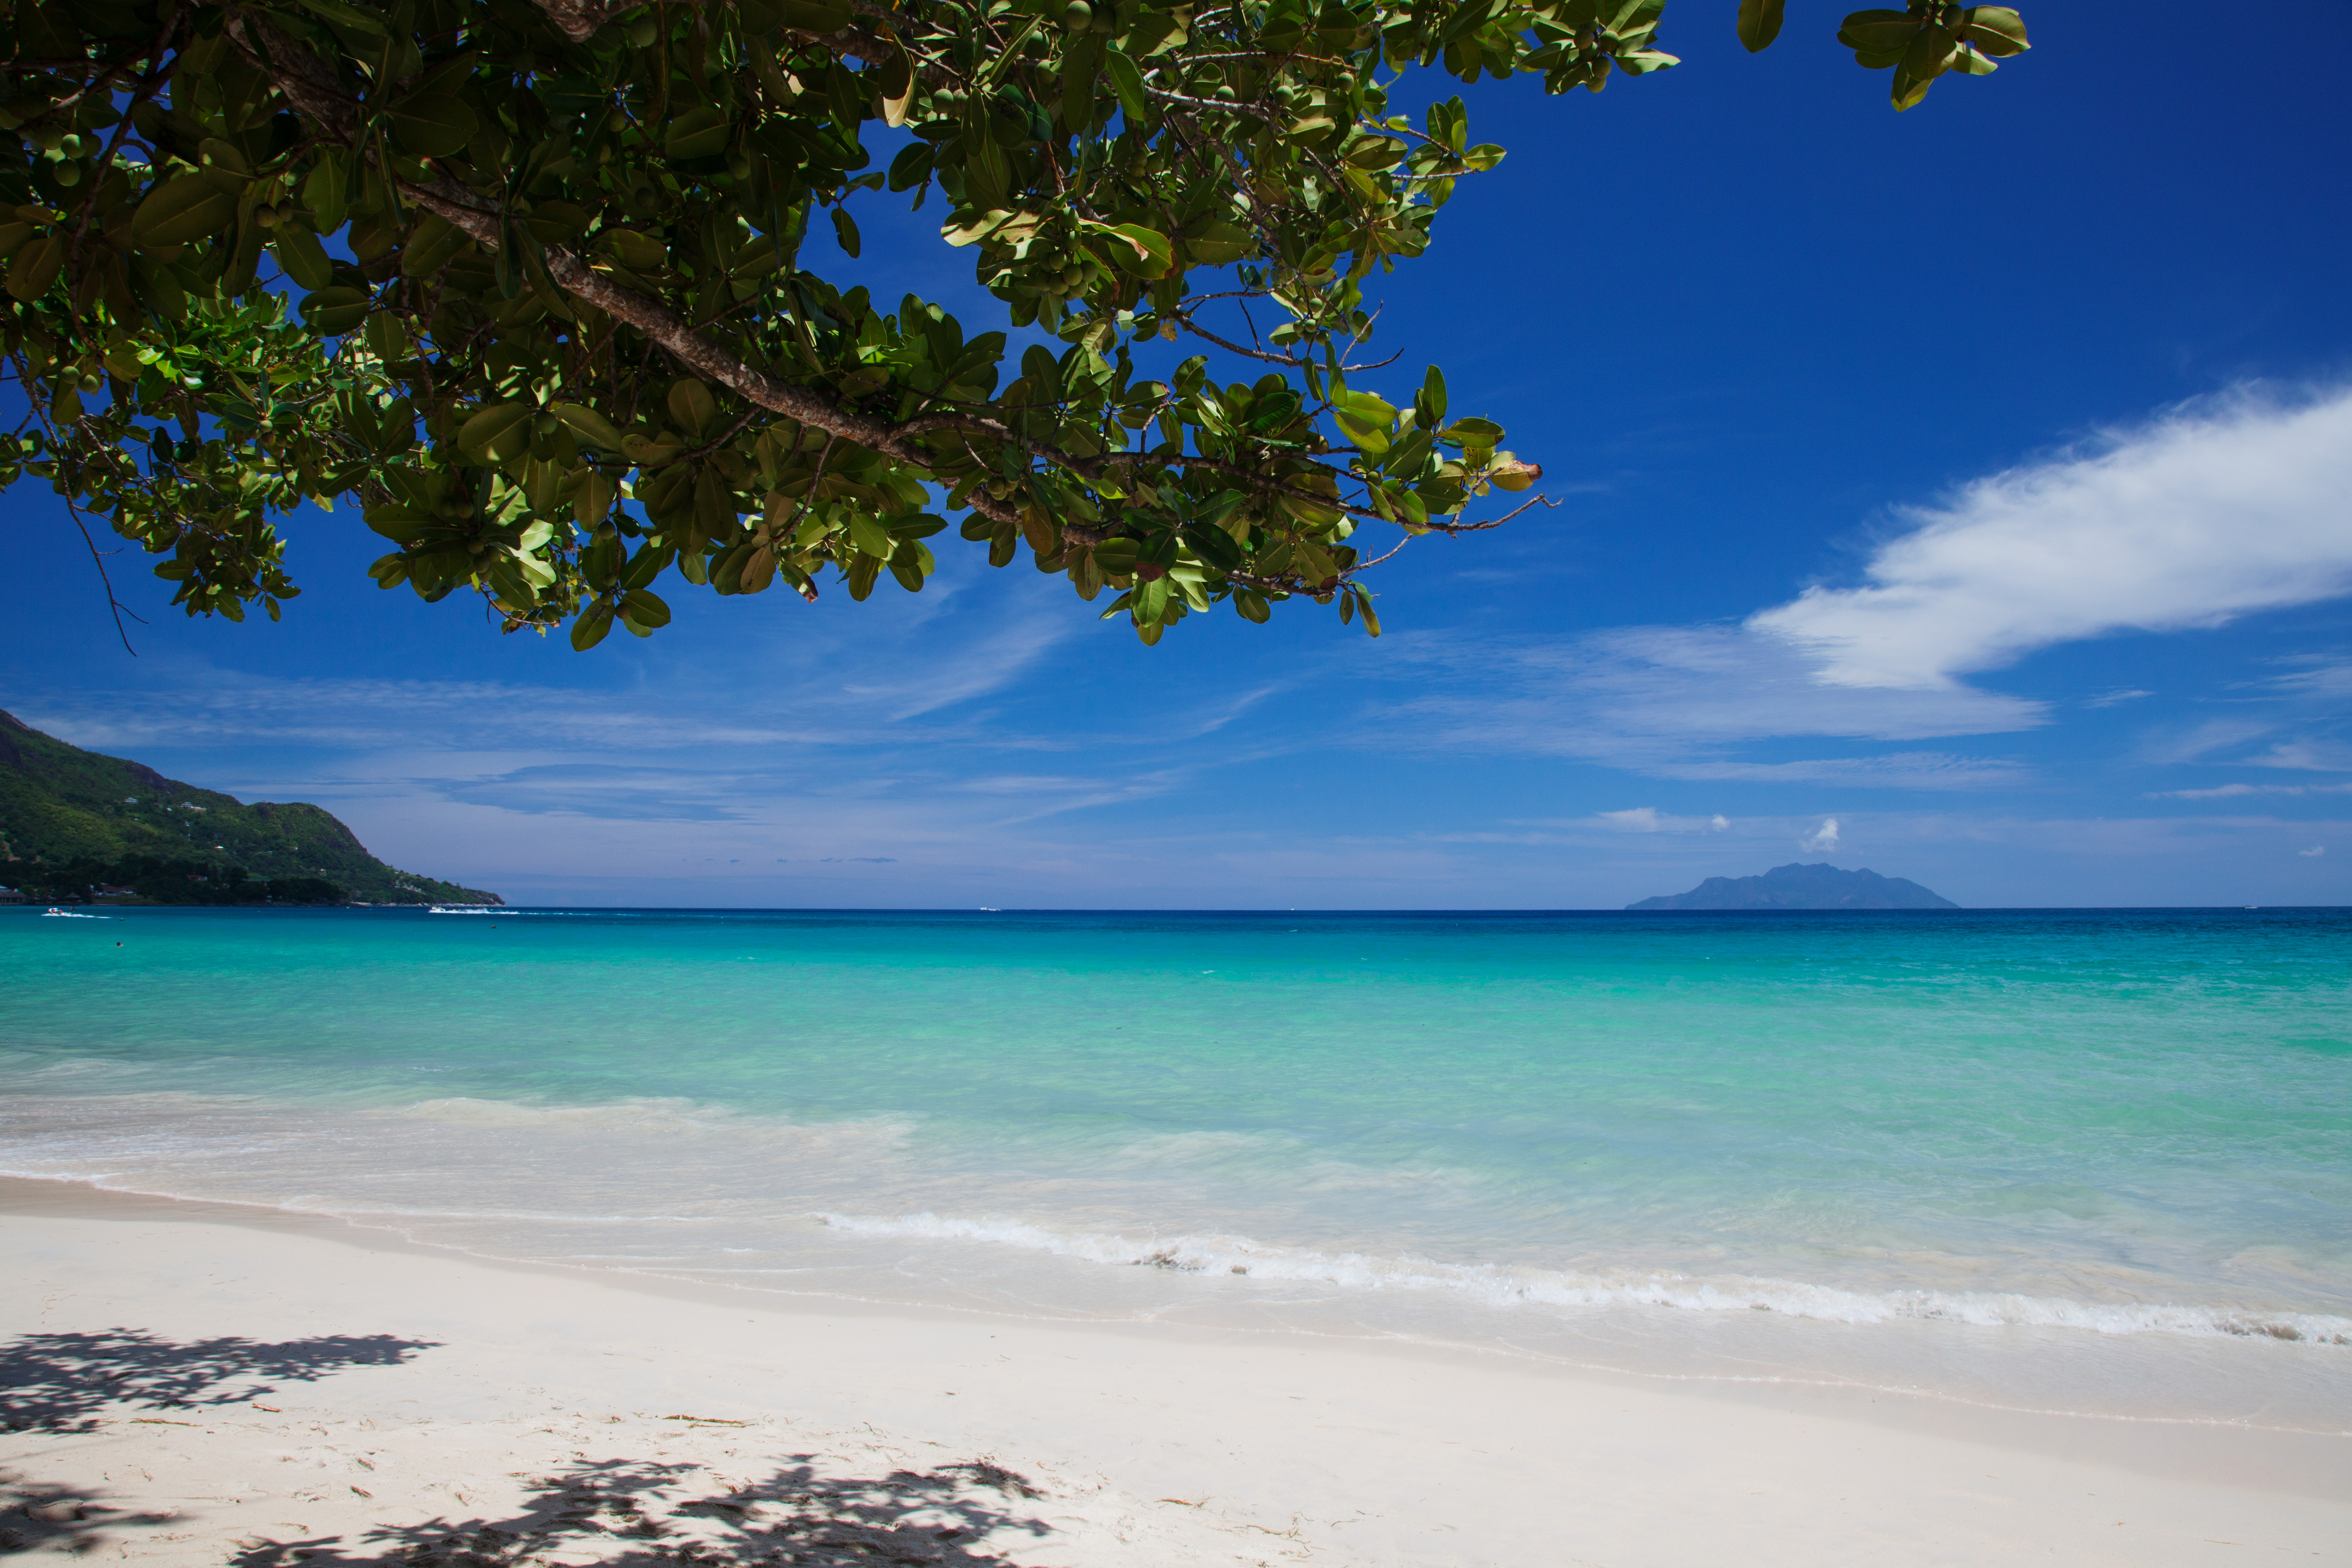 Beauvallon Beach, Mahé, Seychelles